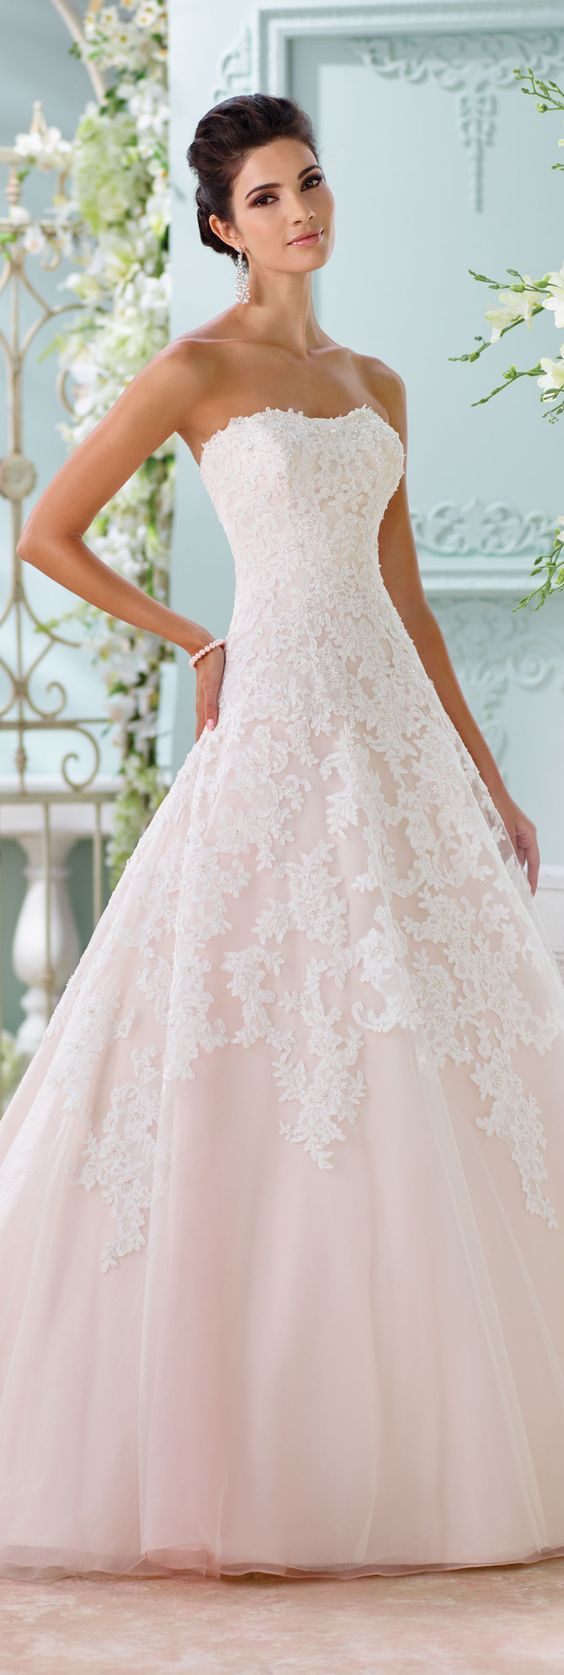 Wedding - Strapless Lace Bridal Gown